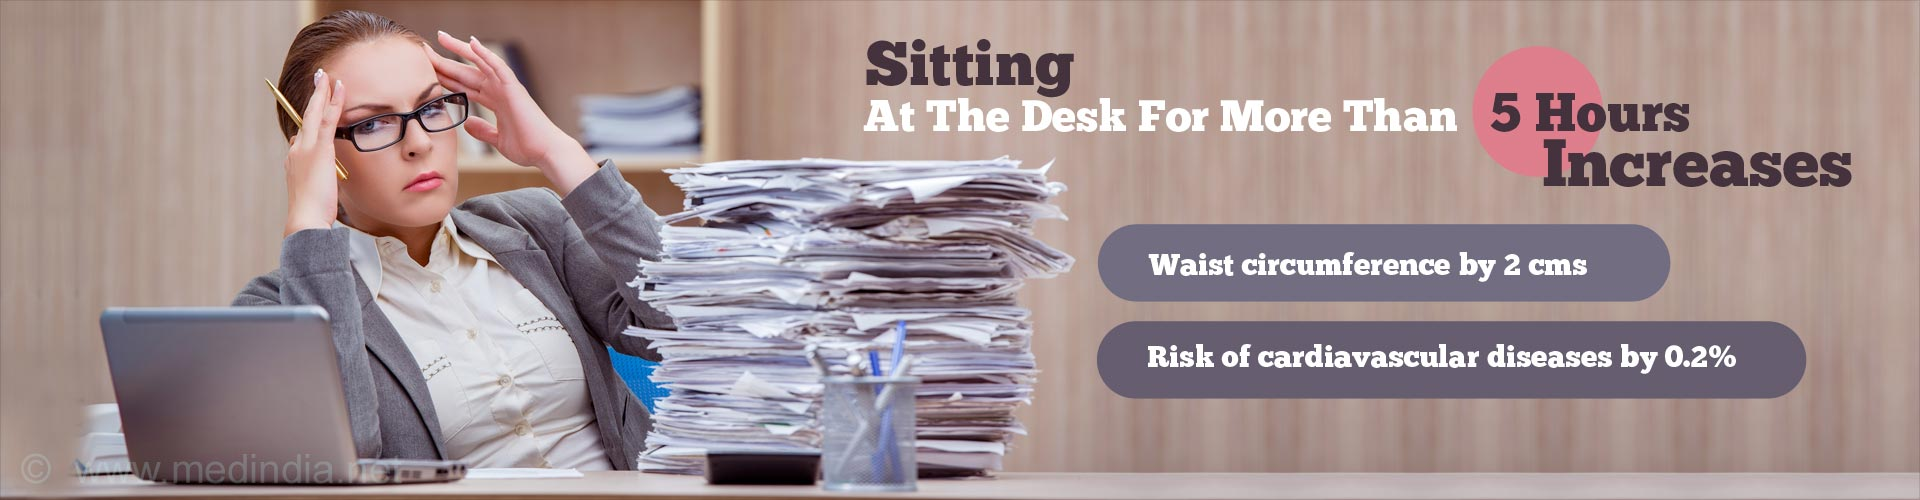 Desk Jobs Are Bad For Your Waist And Heart